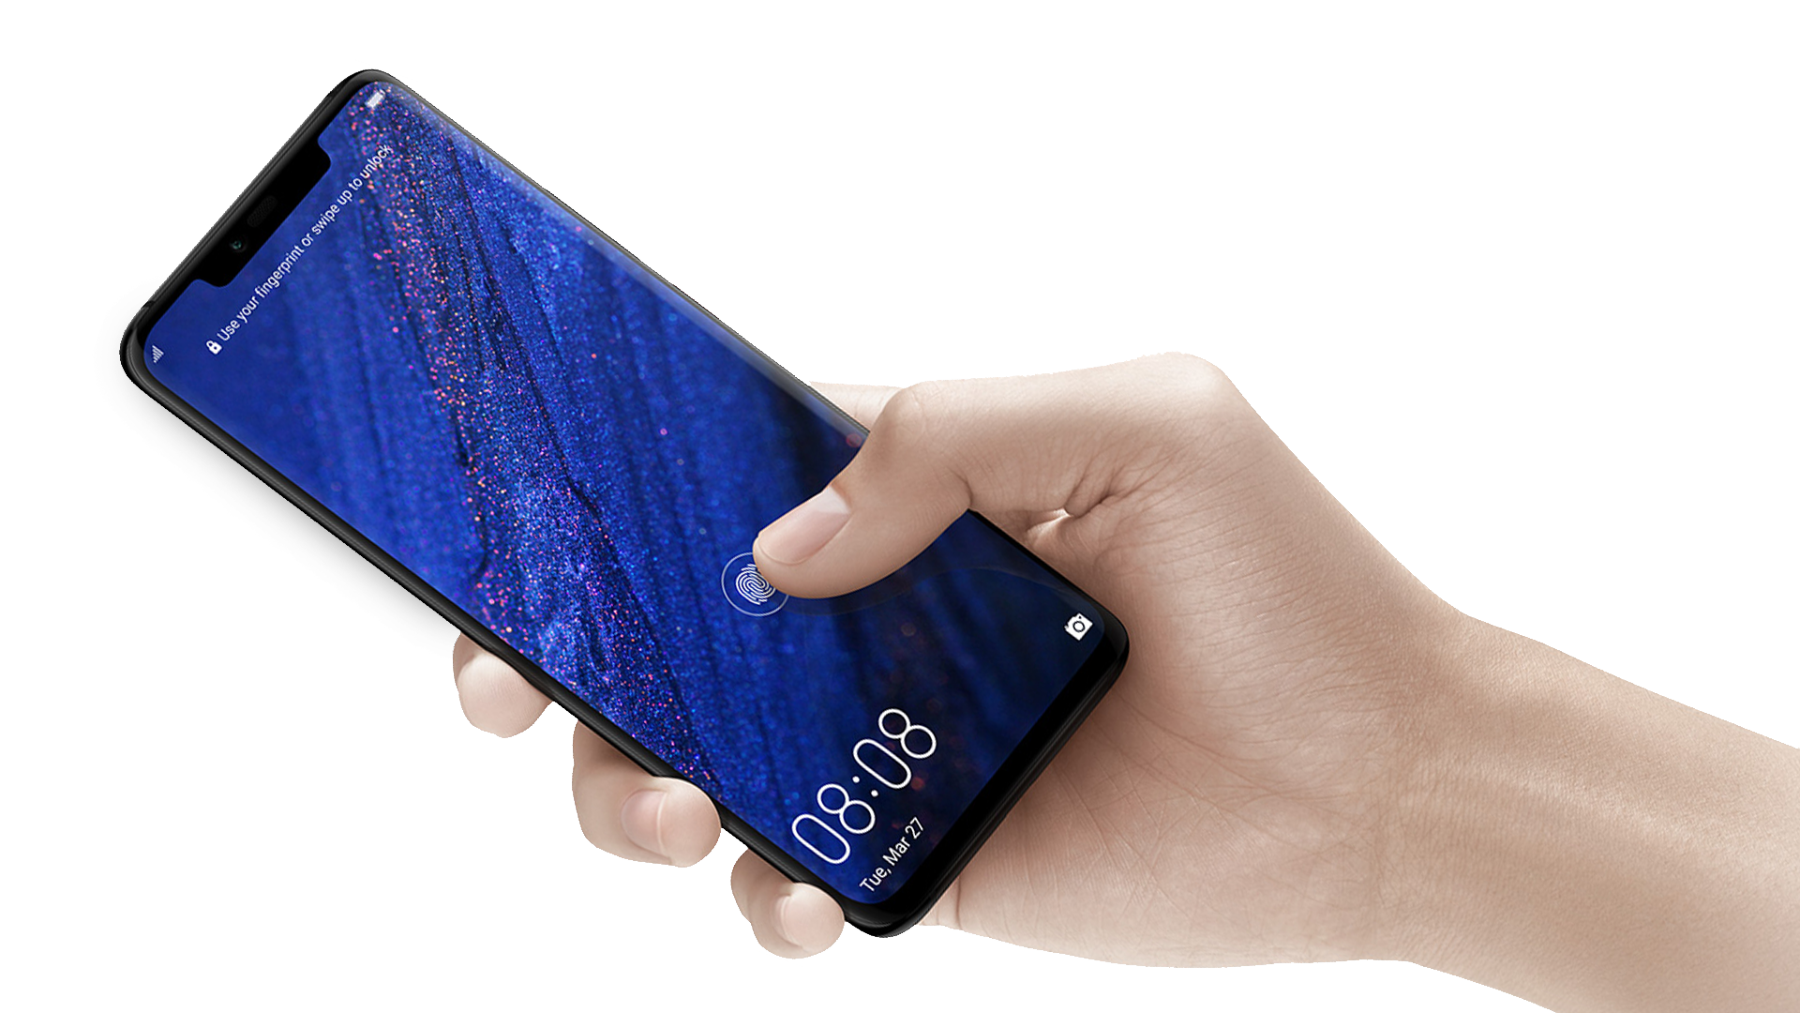 Unlock your Mate 20 Pro with the new in-screen fingerprint sensor